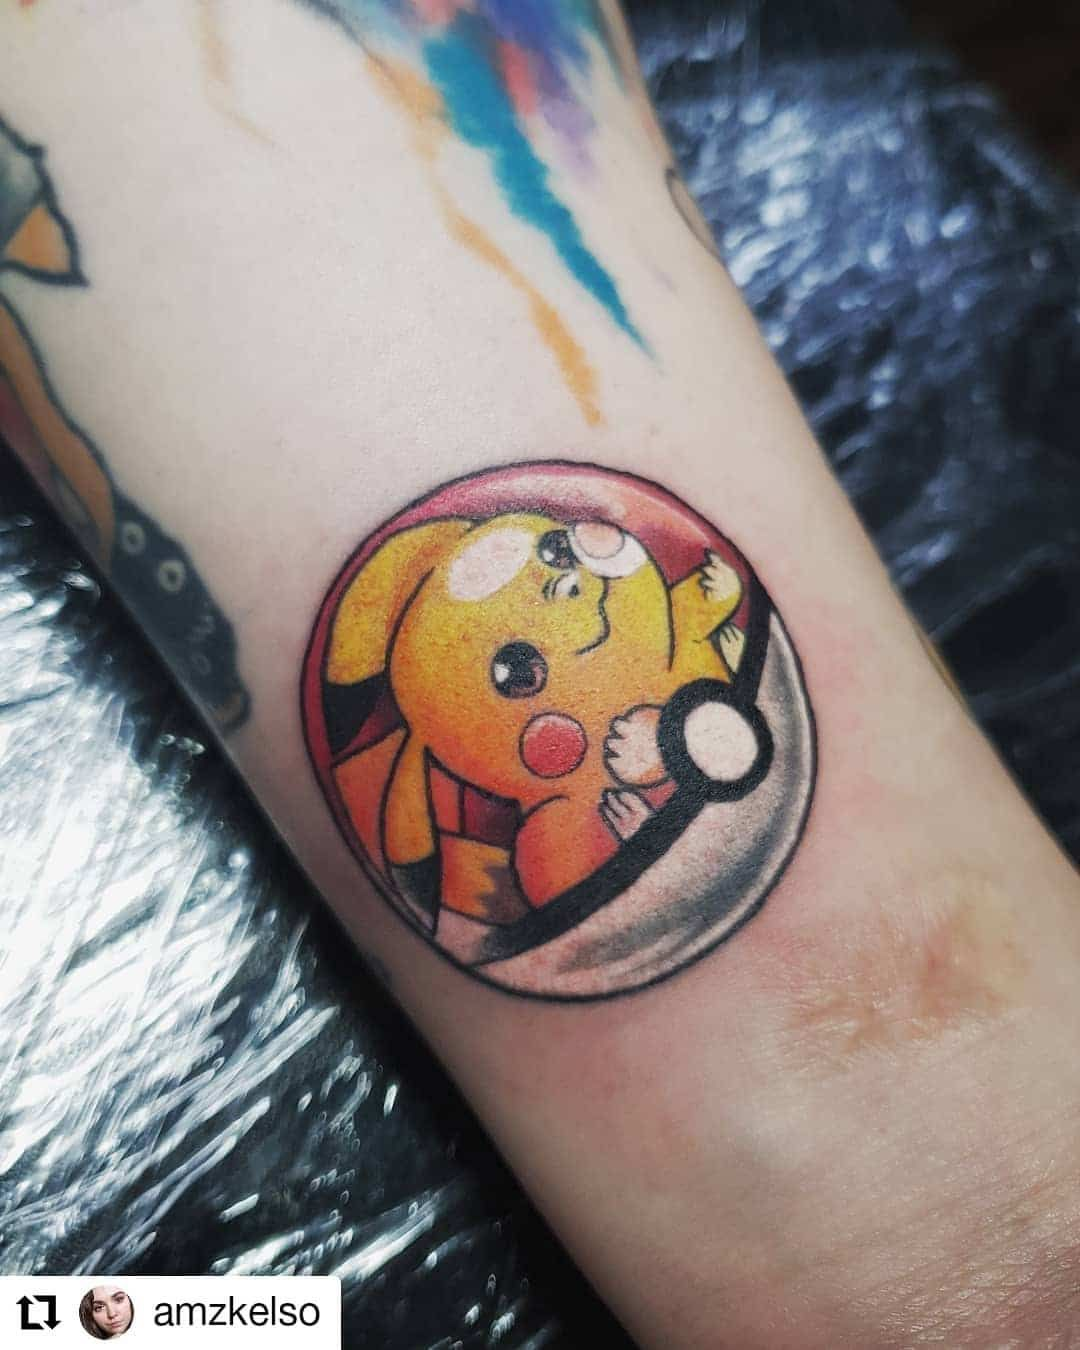 101 Awesome Pokemon Tattoo Designs You Need To See In 2020 Pokemon Tattoo Pikachu Tattoo Pokeball Tattoo